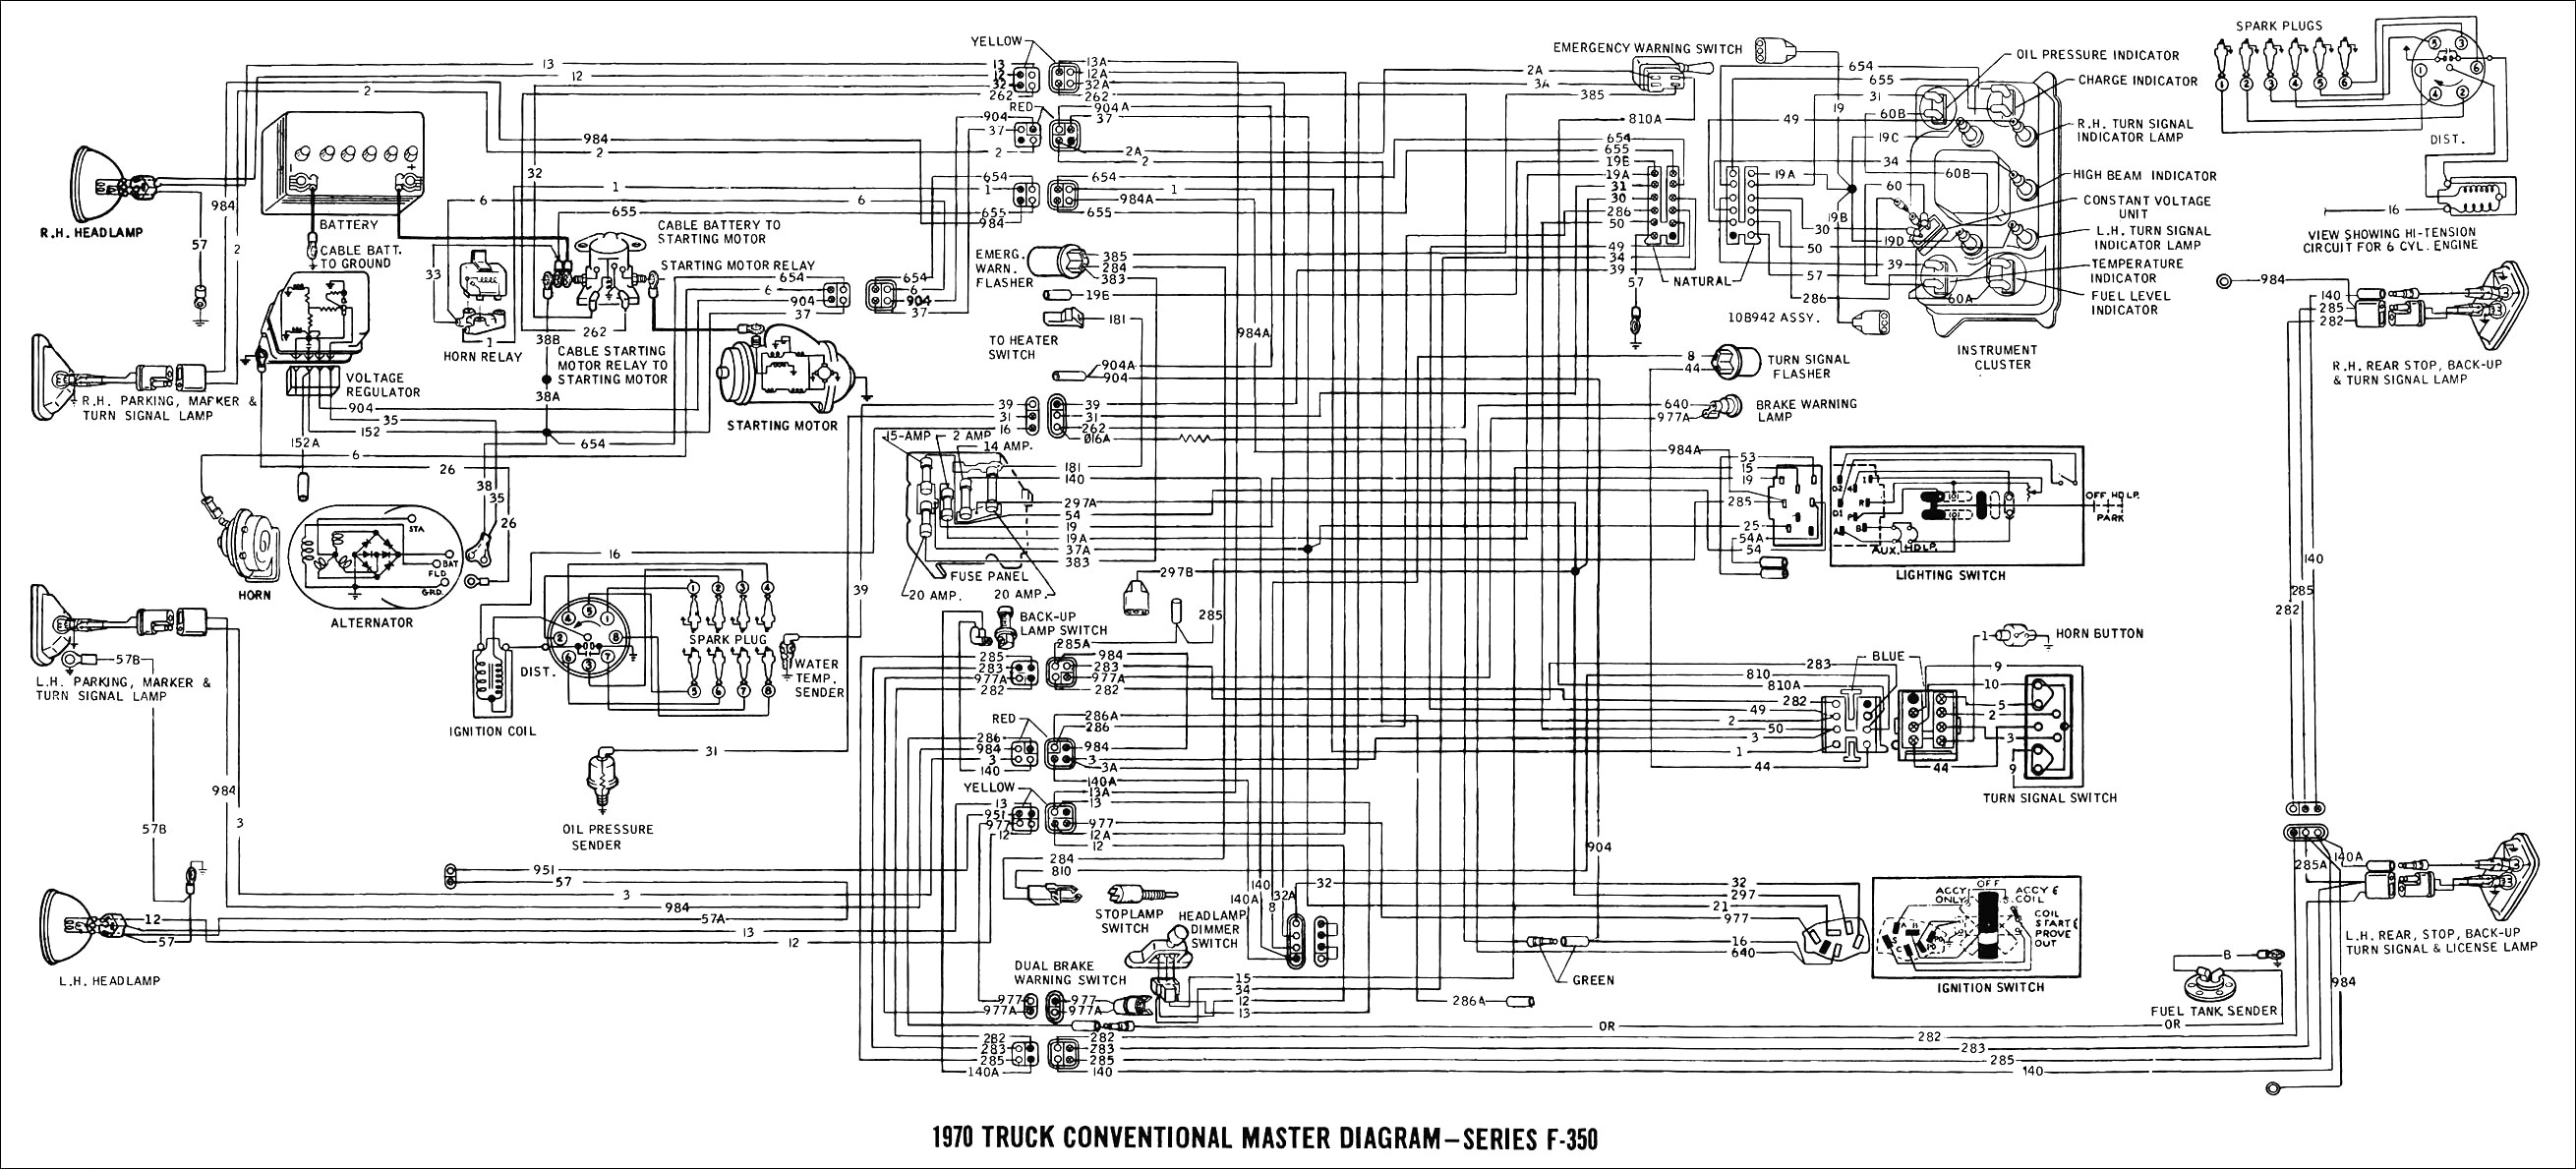 1996 ford f700 wiring schematic car wiring diagrams explained u2022 rh ethermag co